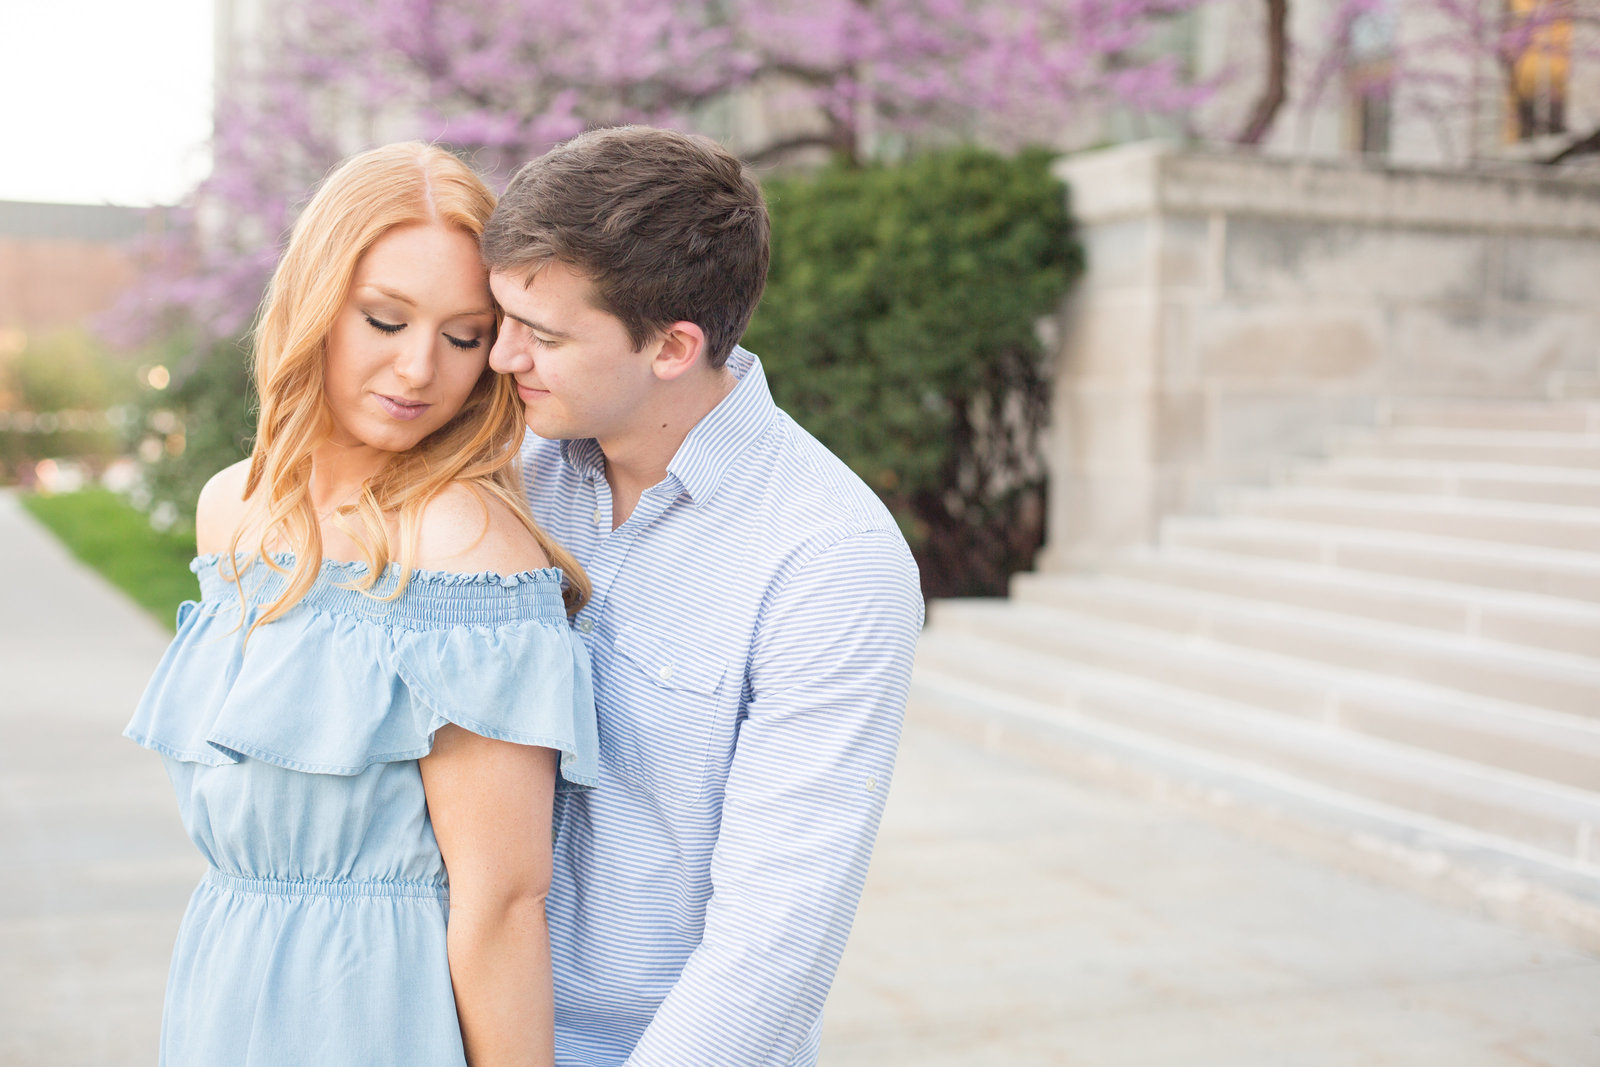 sweet-blue-dress-red-hair-couple-fiance-marriage-love-express-iowa-city-engagement-photo